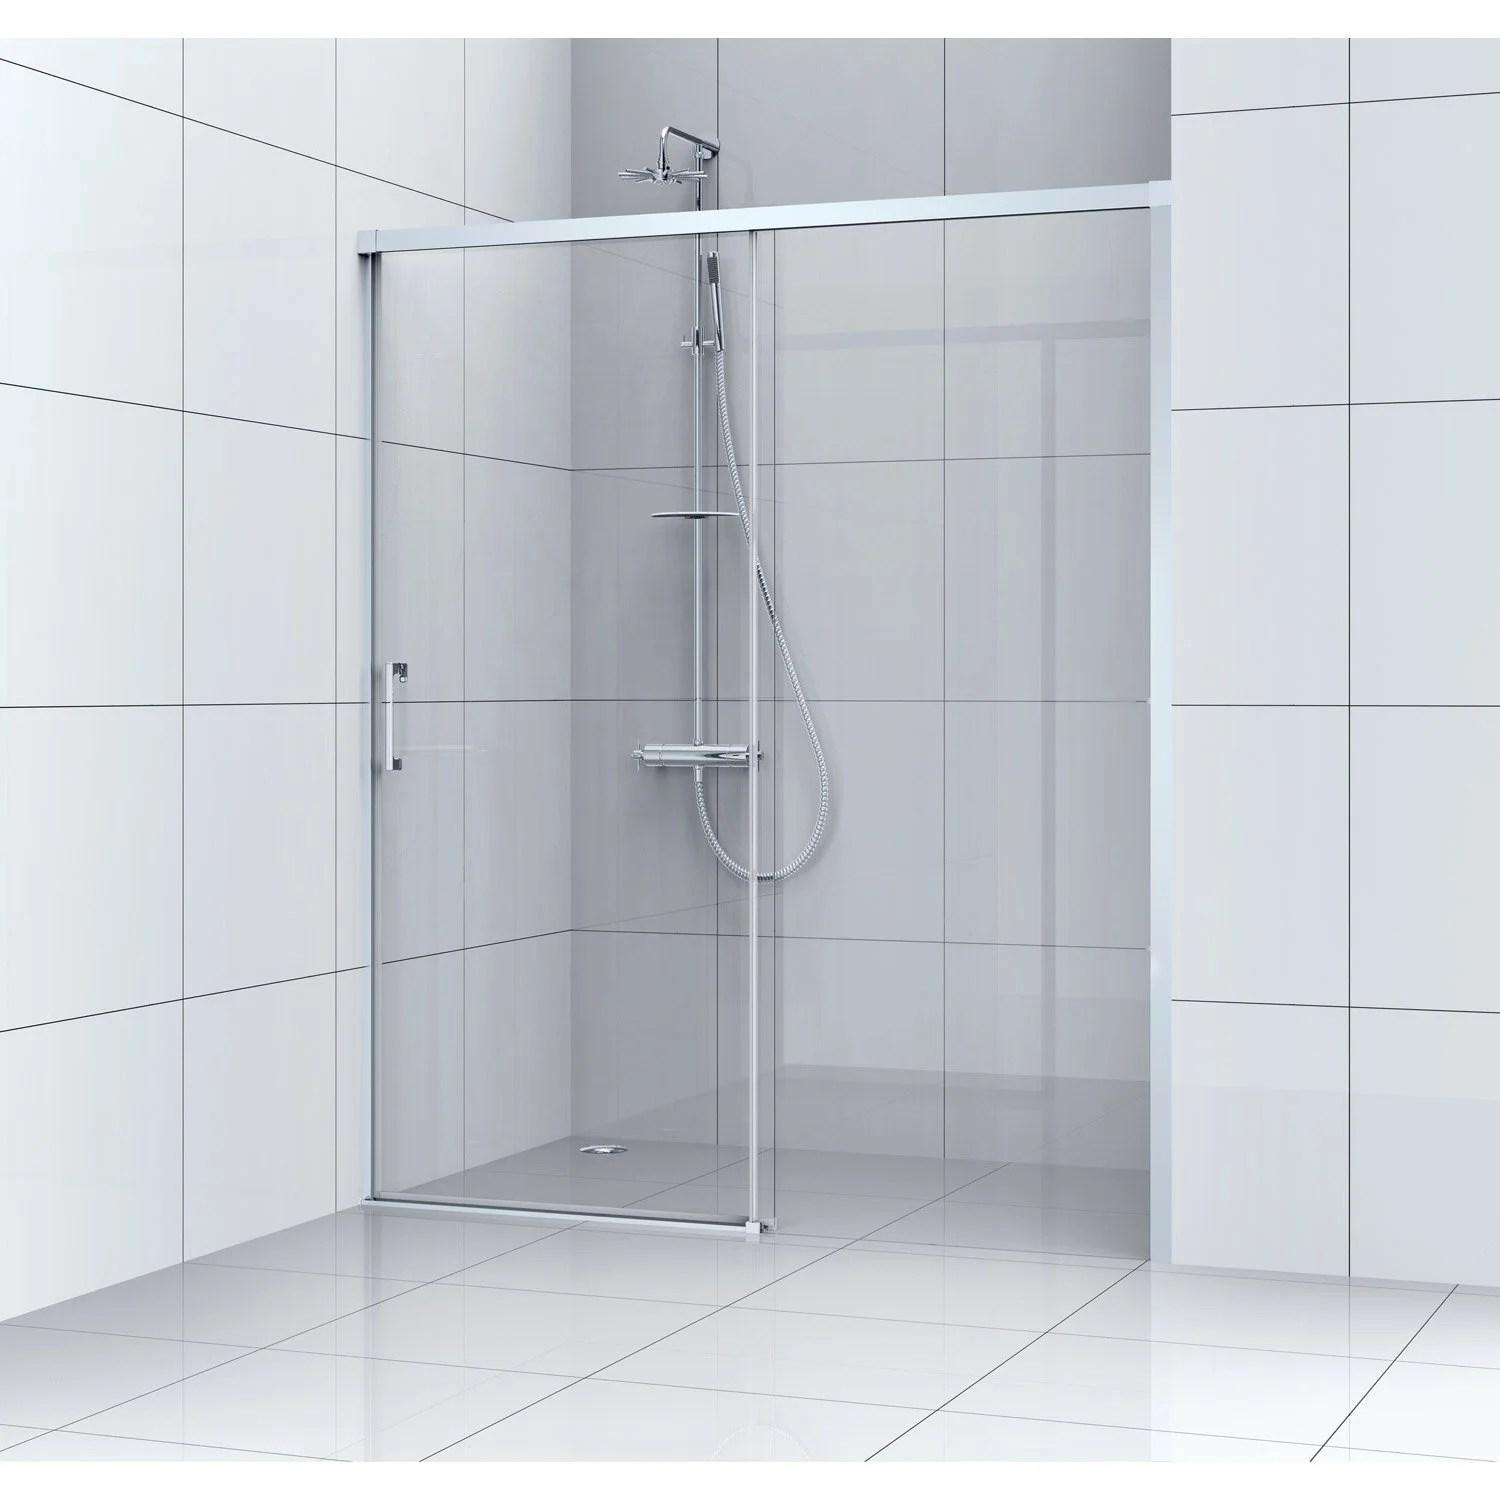 Porte Coulissante Magasin Porte De Douche Coulissante 160 Cm Transparent Remix